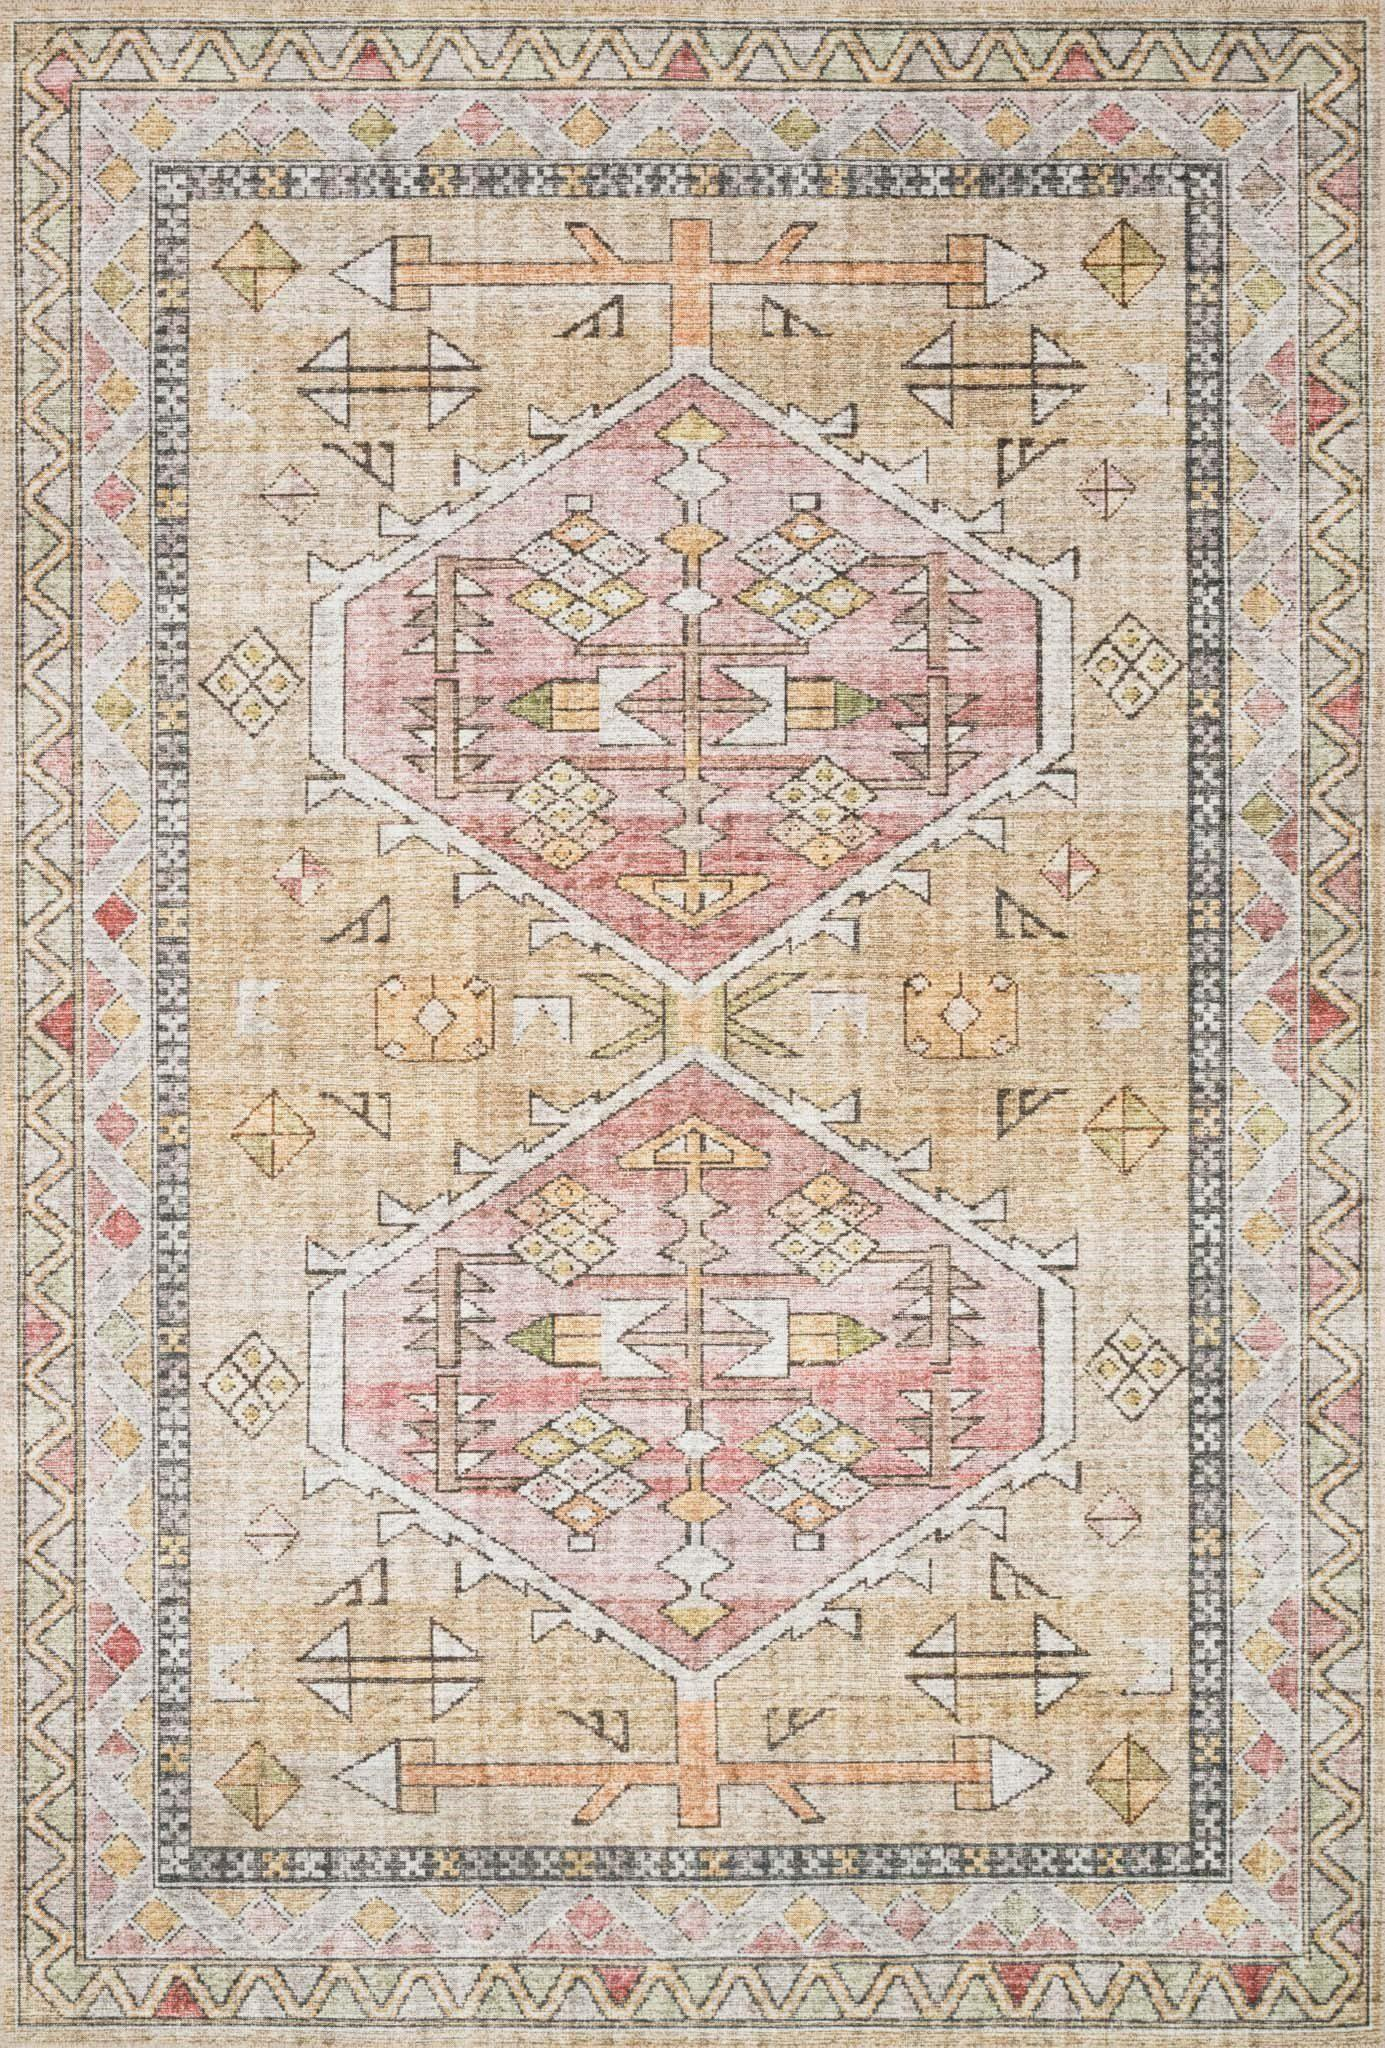 "Skye SKY-04 Gold / Blush Area Rug-Area Rug-Loloi-1'-6"" x 1'-6"" Square-The Rug Truck"